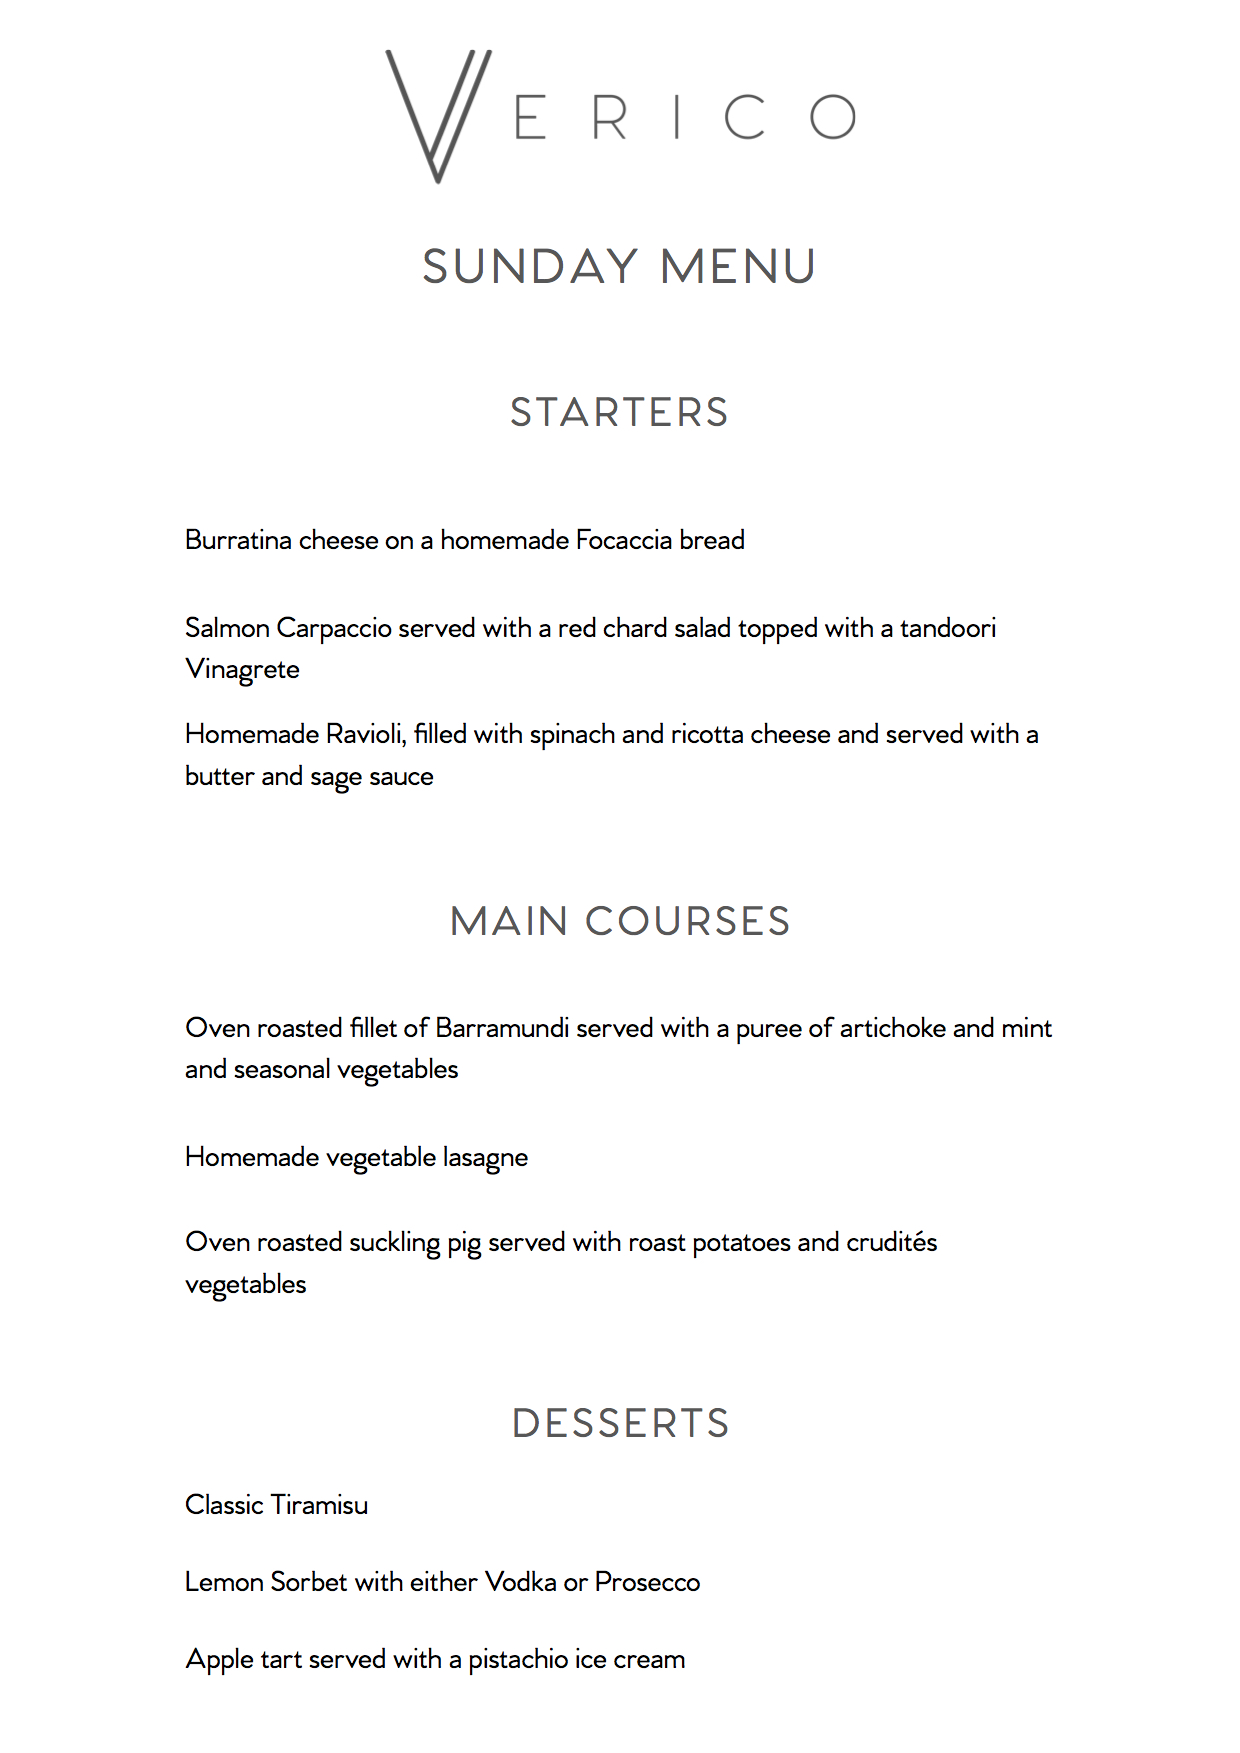 VERICO MENU english_Sunday_2018_04_29.jpg